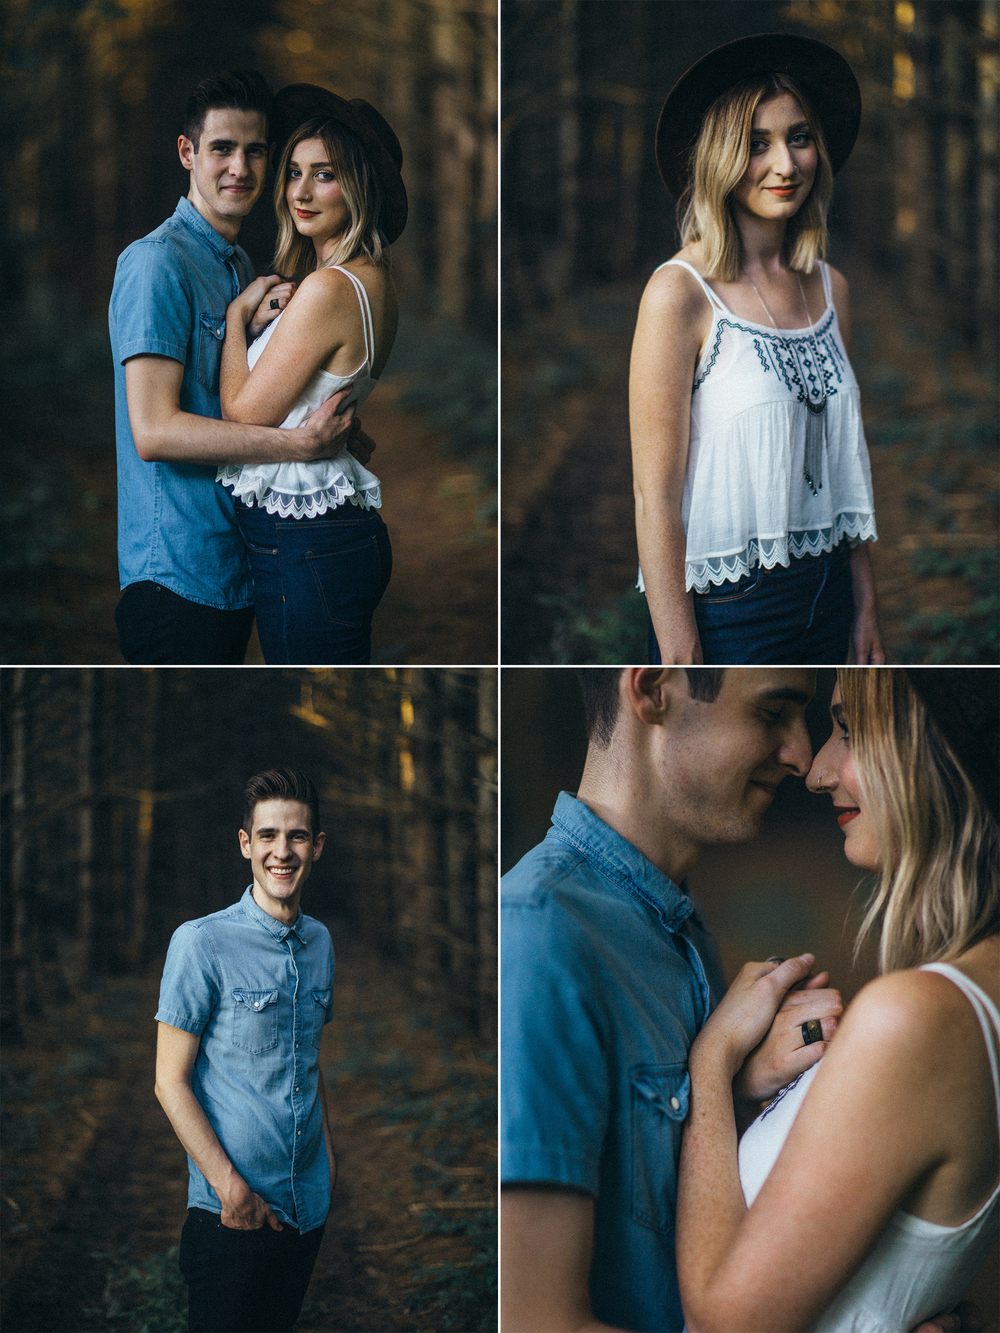 Addison & Rebekah Sauvan - Anniversary Portraits by Rusty Wright